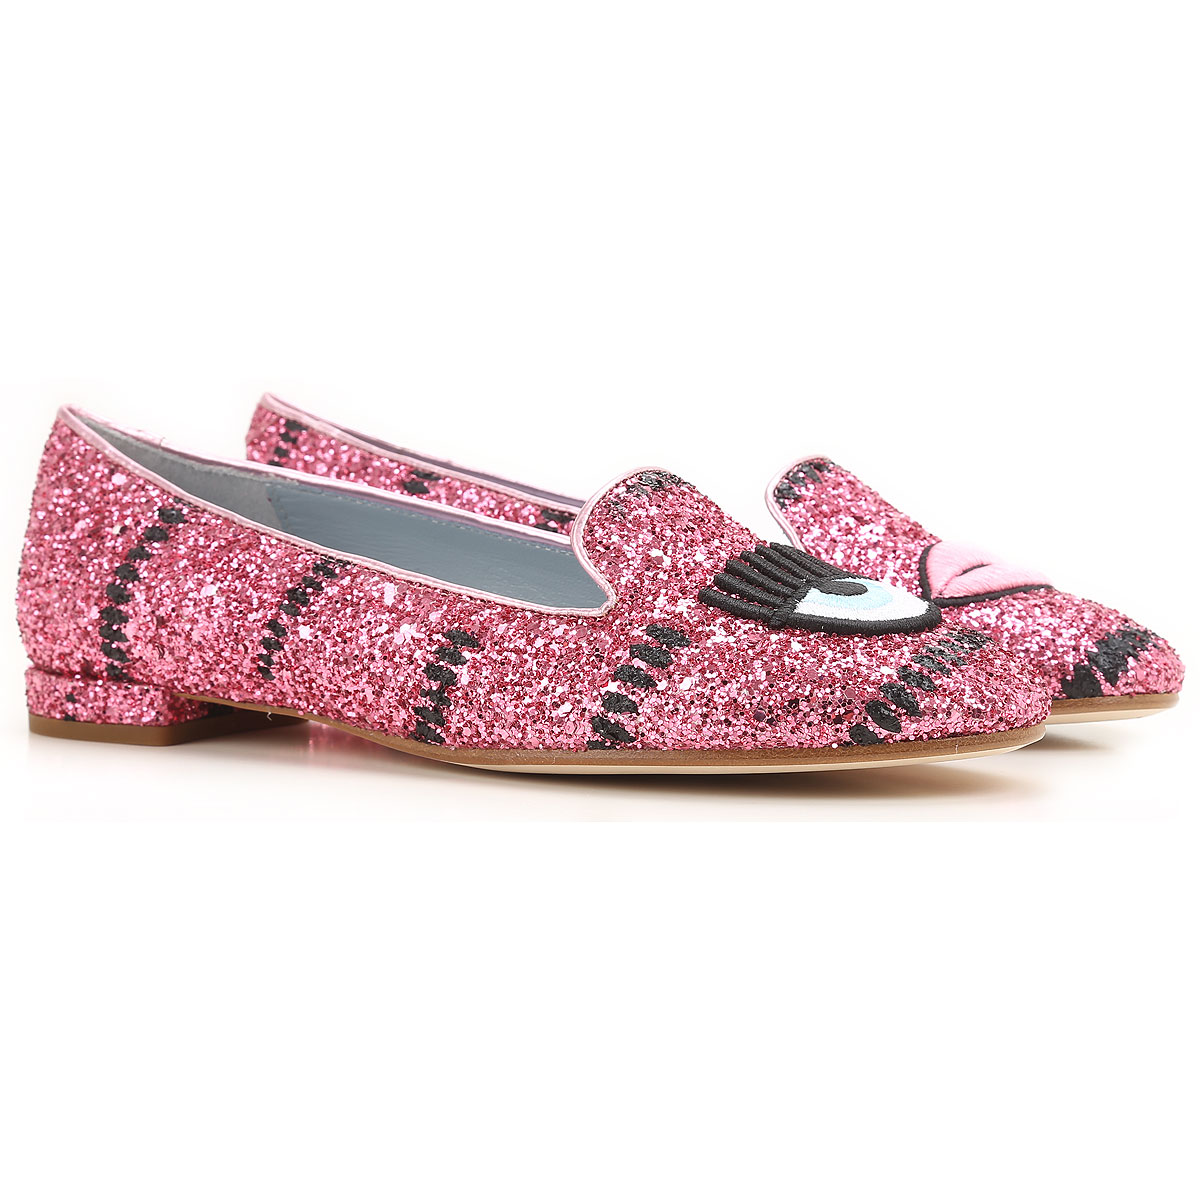 Image of Chiara Ferragni Ballet Flats Ballerina Shoes for Women On Sale in Outlet, fuxia, Leather, 2017, 5 6 8